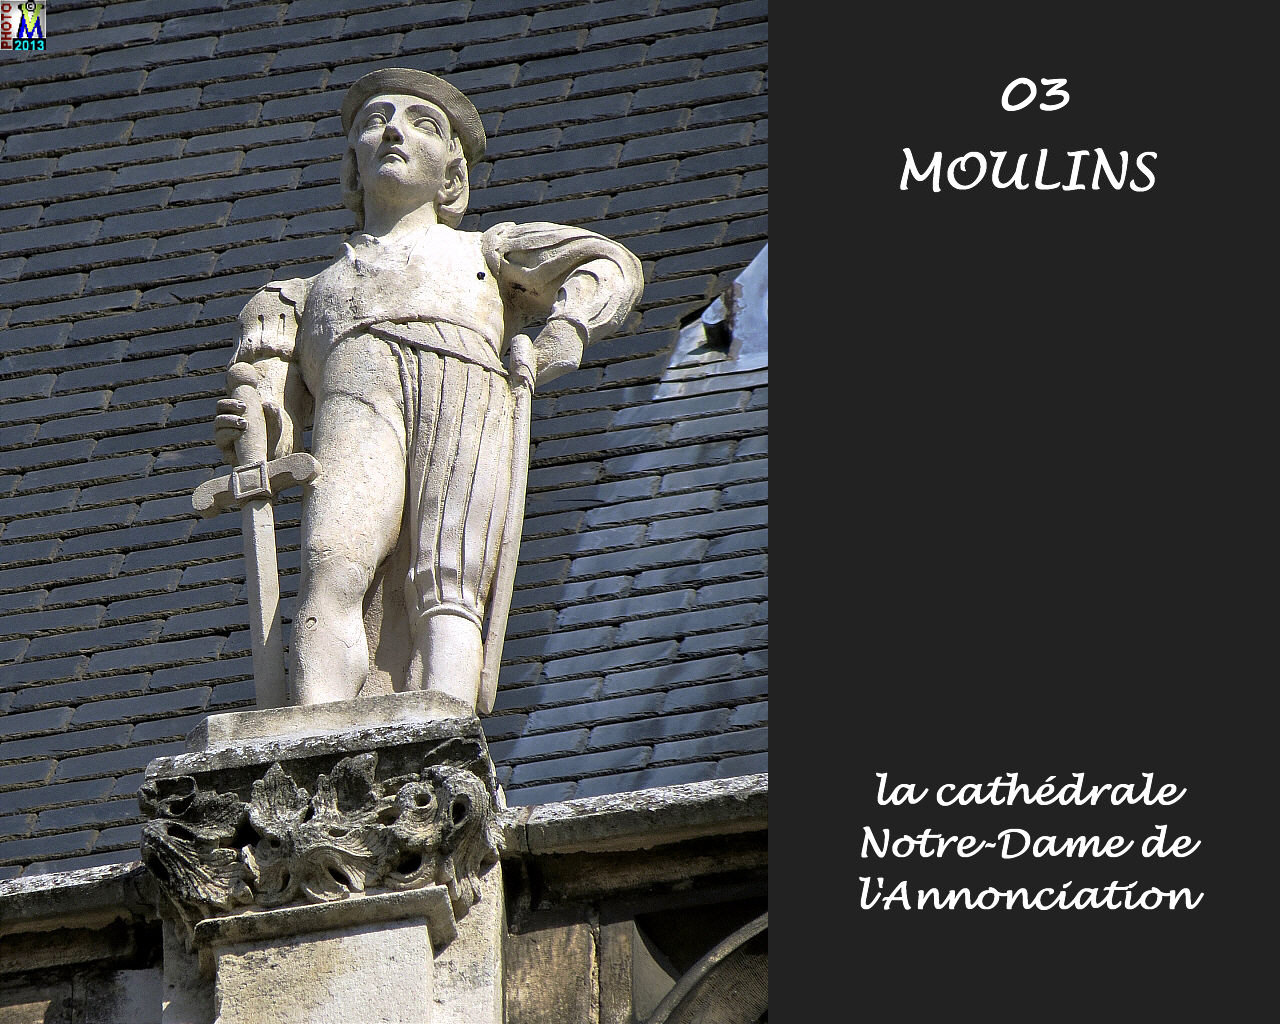 03MOULINS_cathedrale_138.jpg